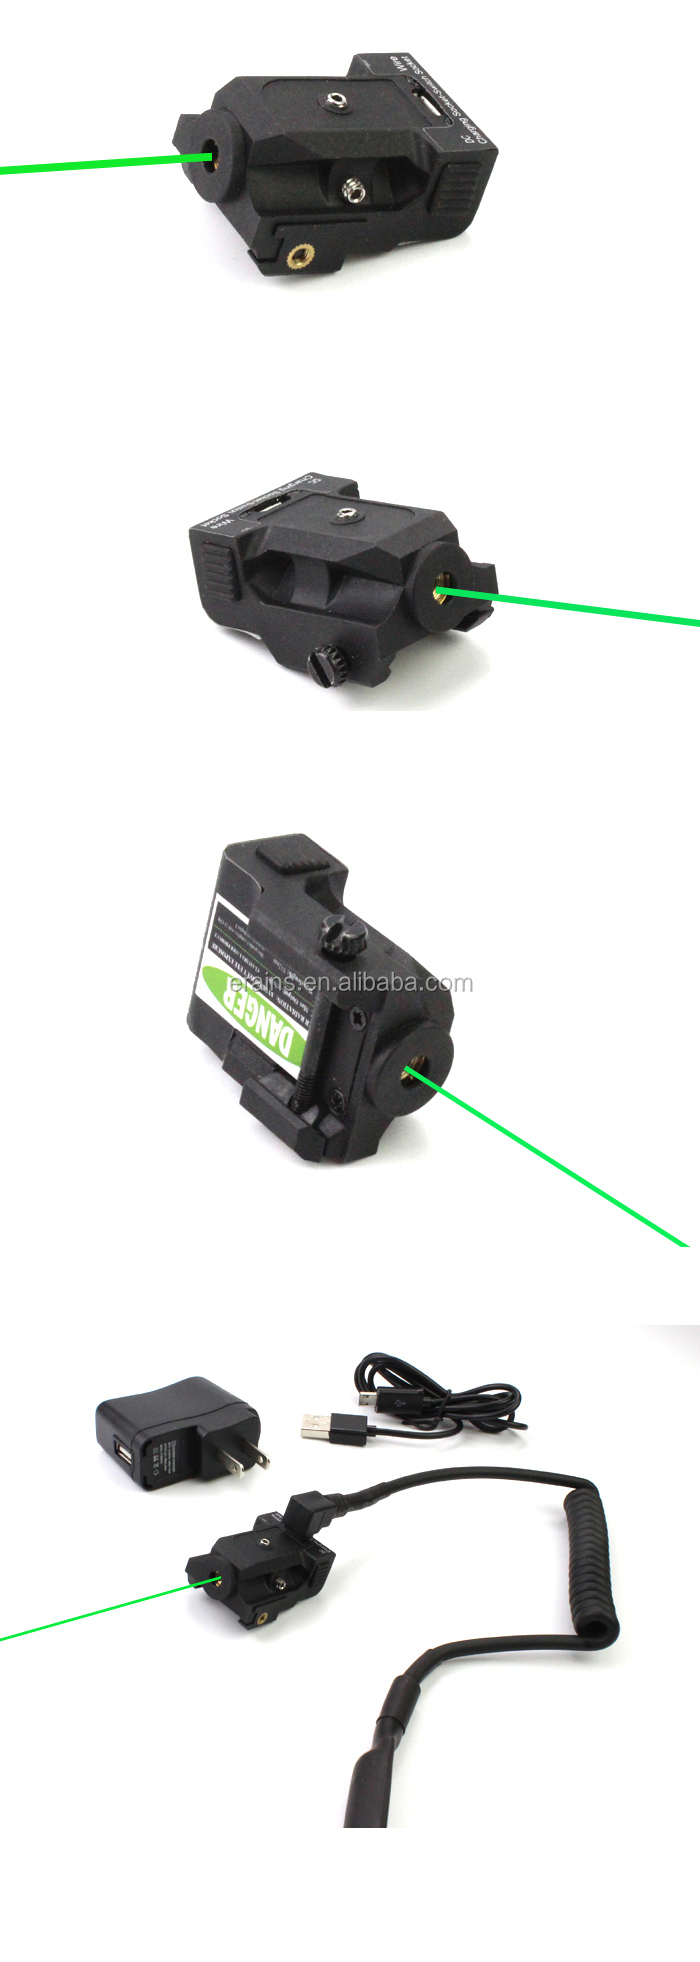 New Improved Design Tactical Sub compact rechargeable pistol green laser sight with tail pad switch